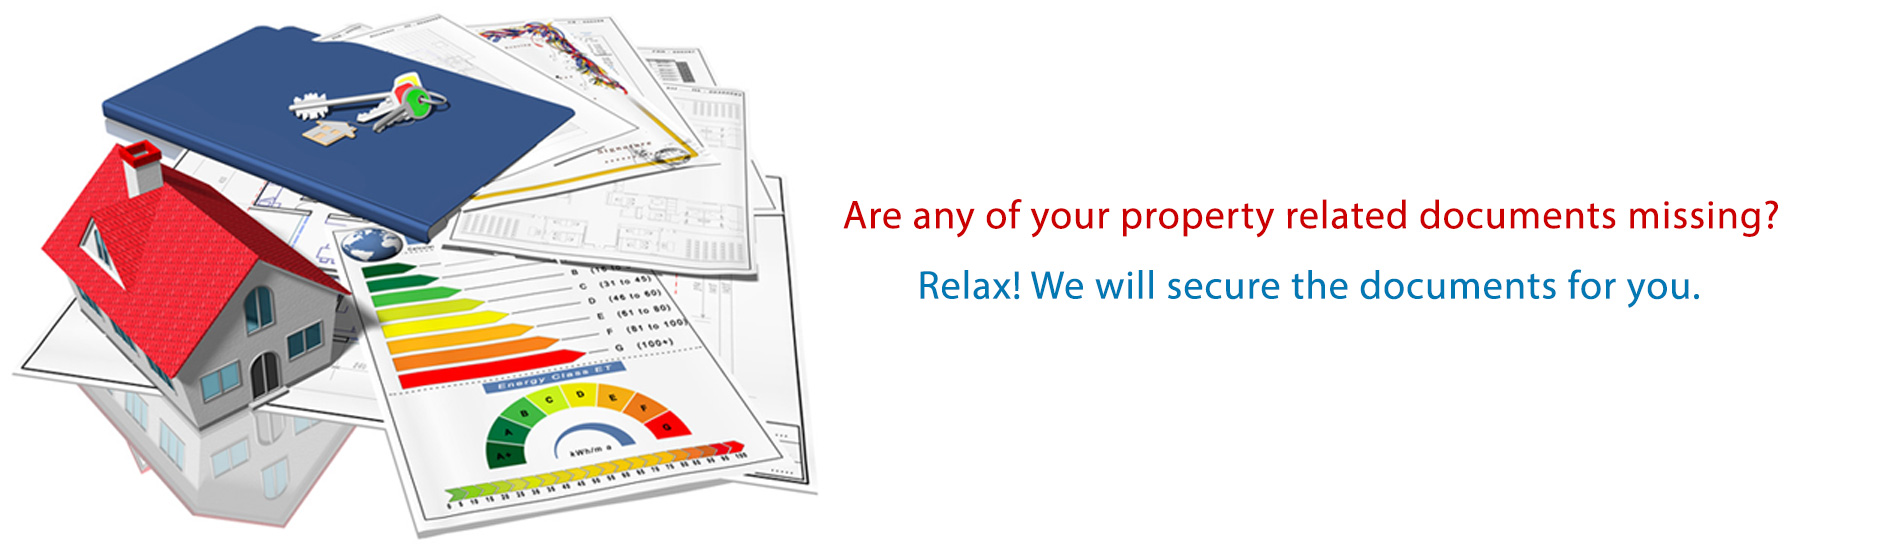 Missing Property Documents.